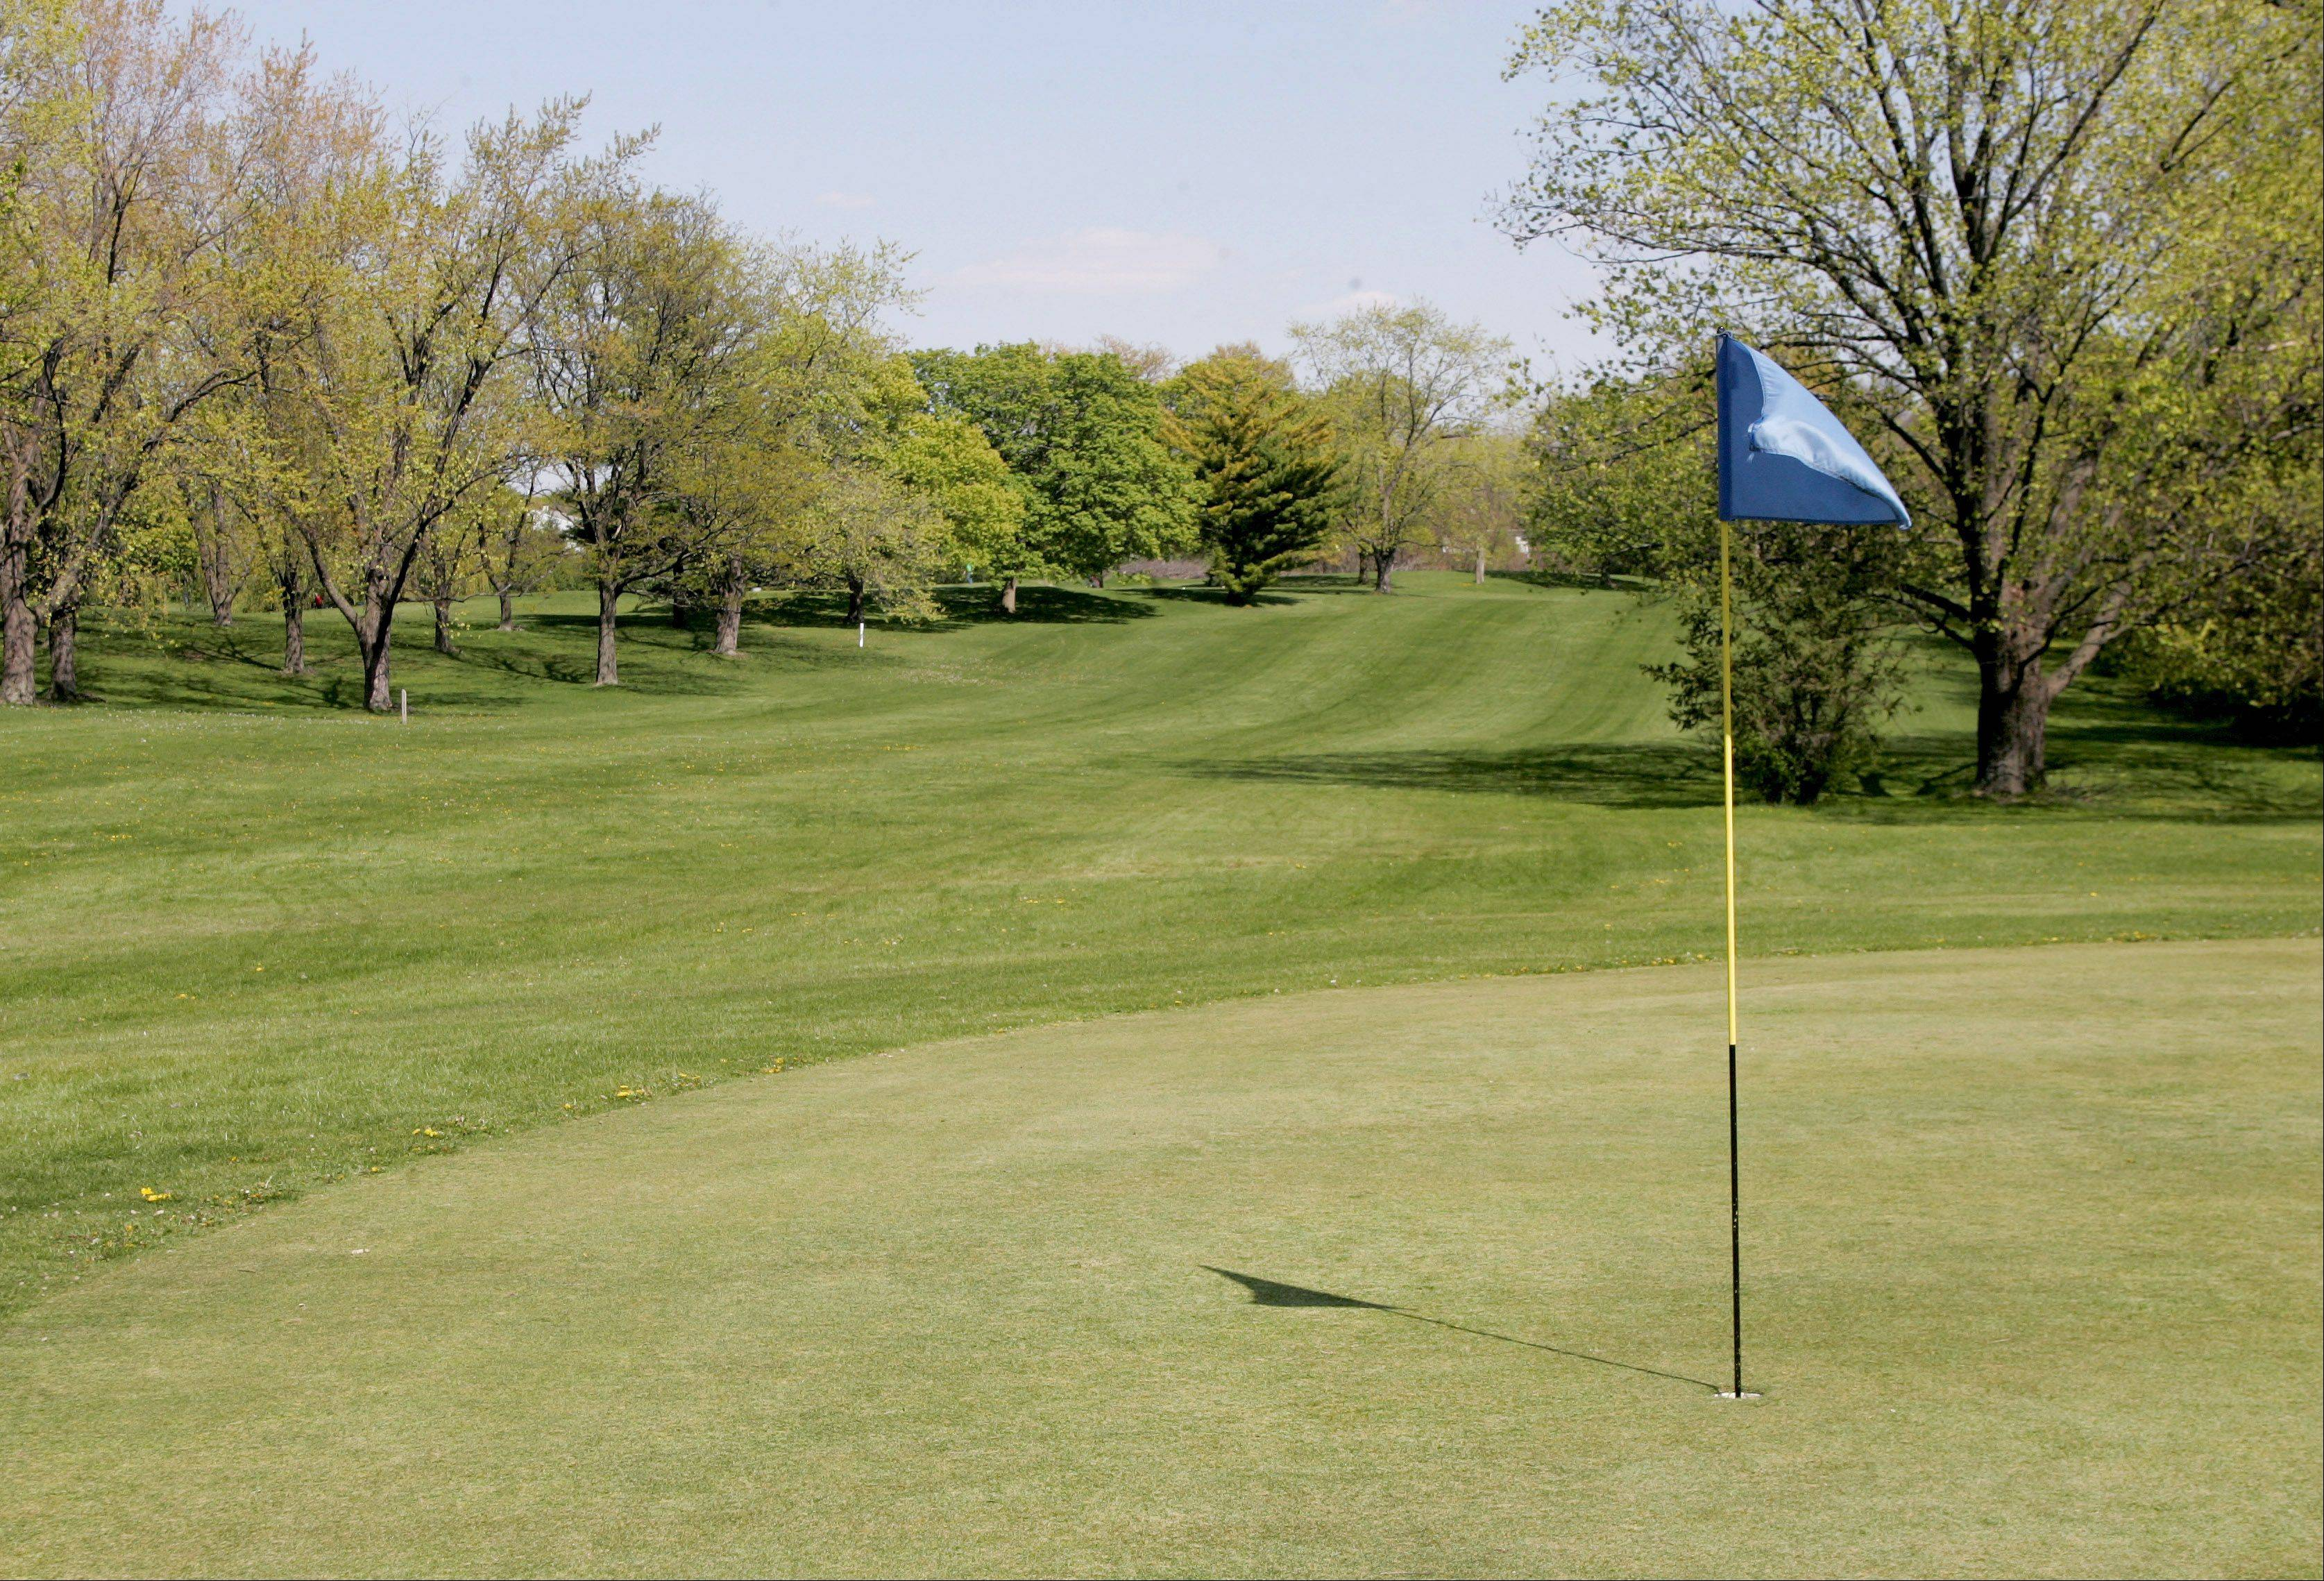 Lombard approves new land-use policy for golf course